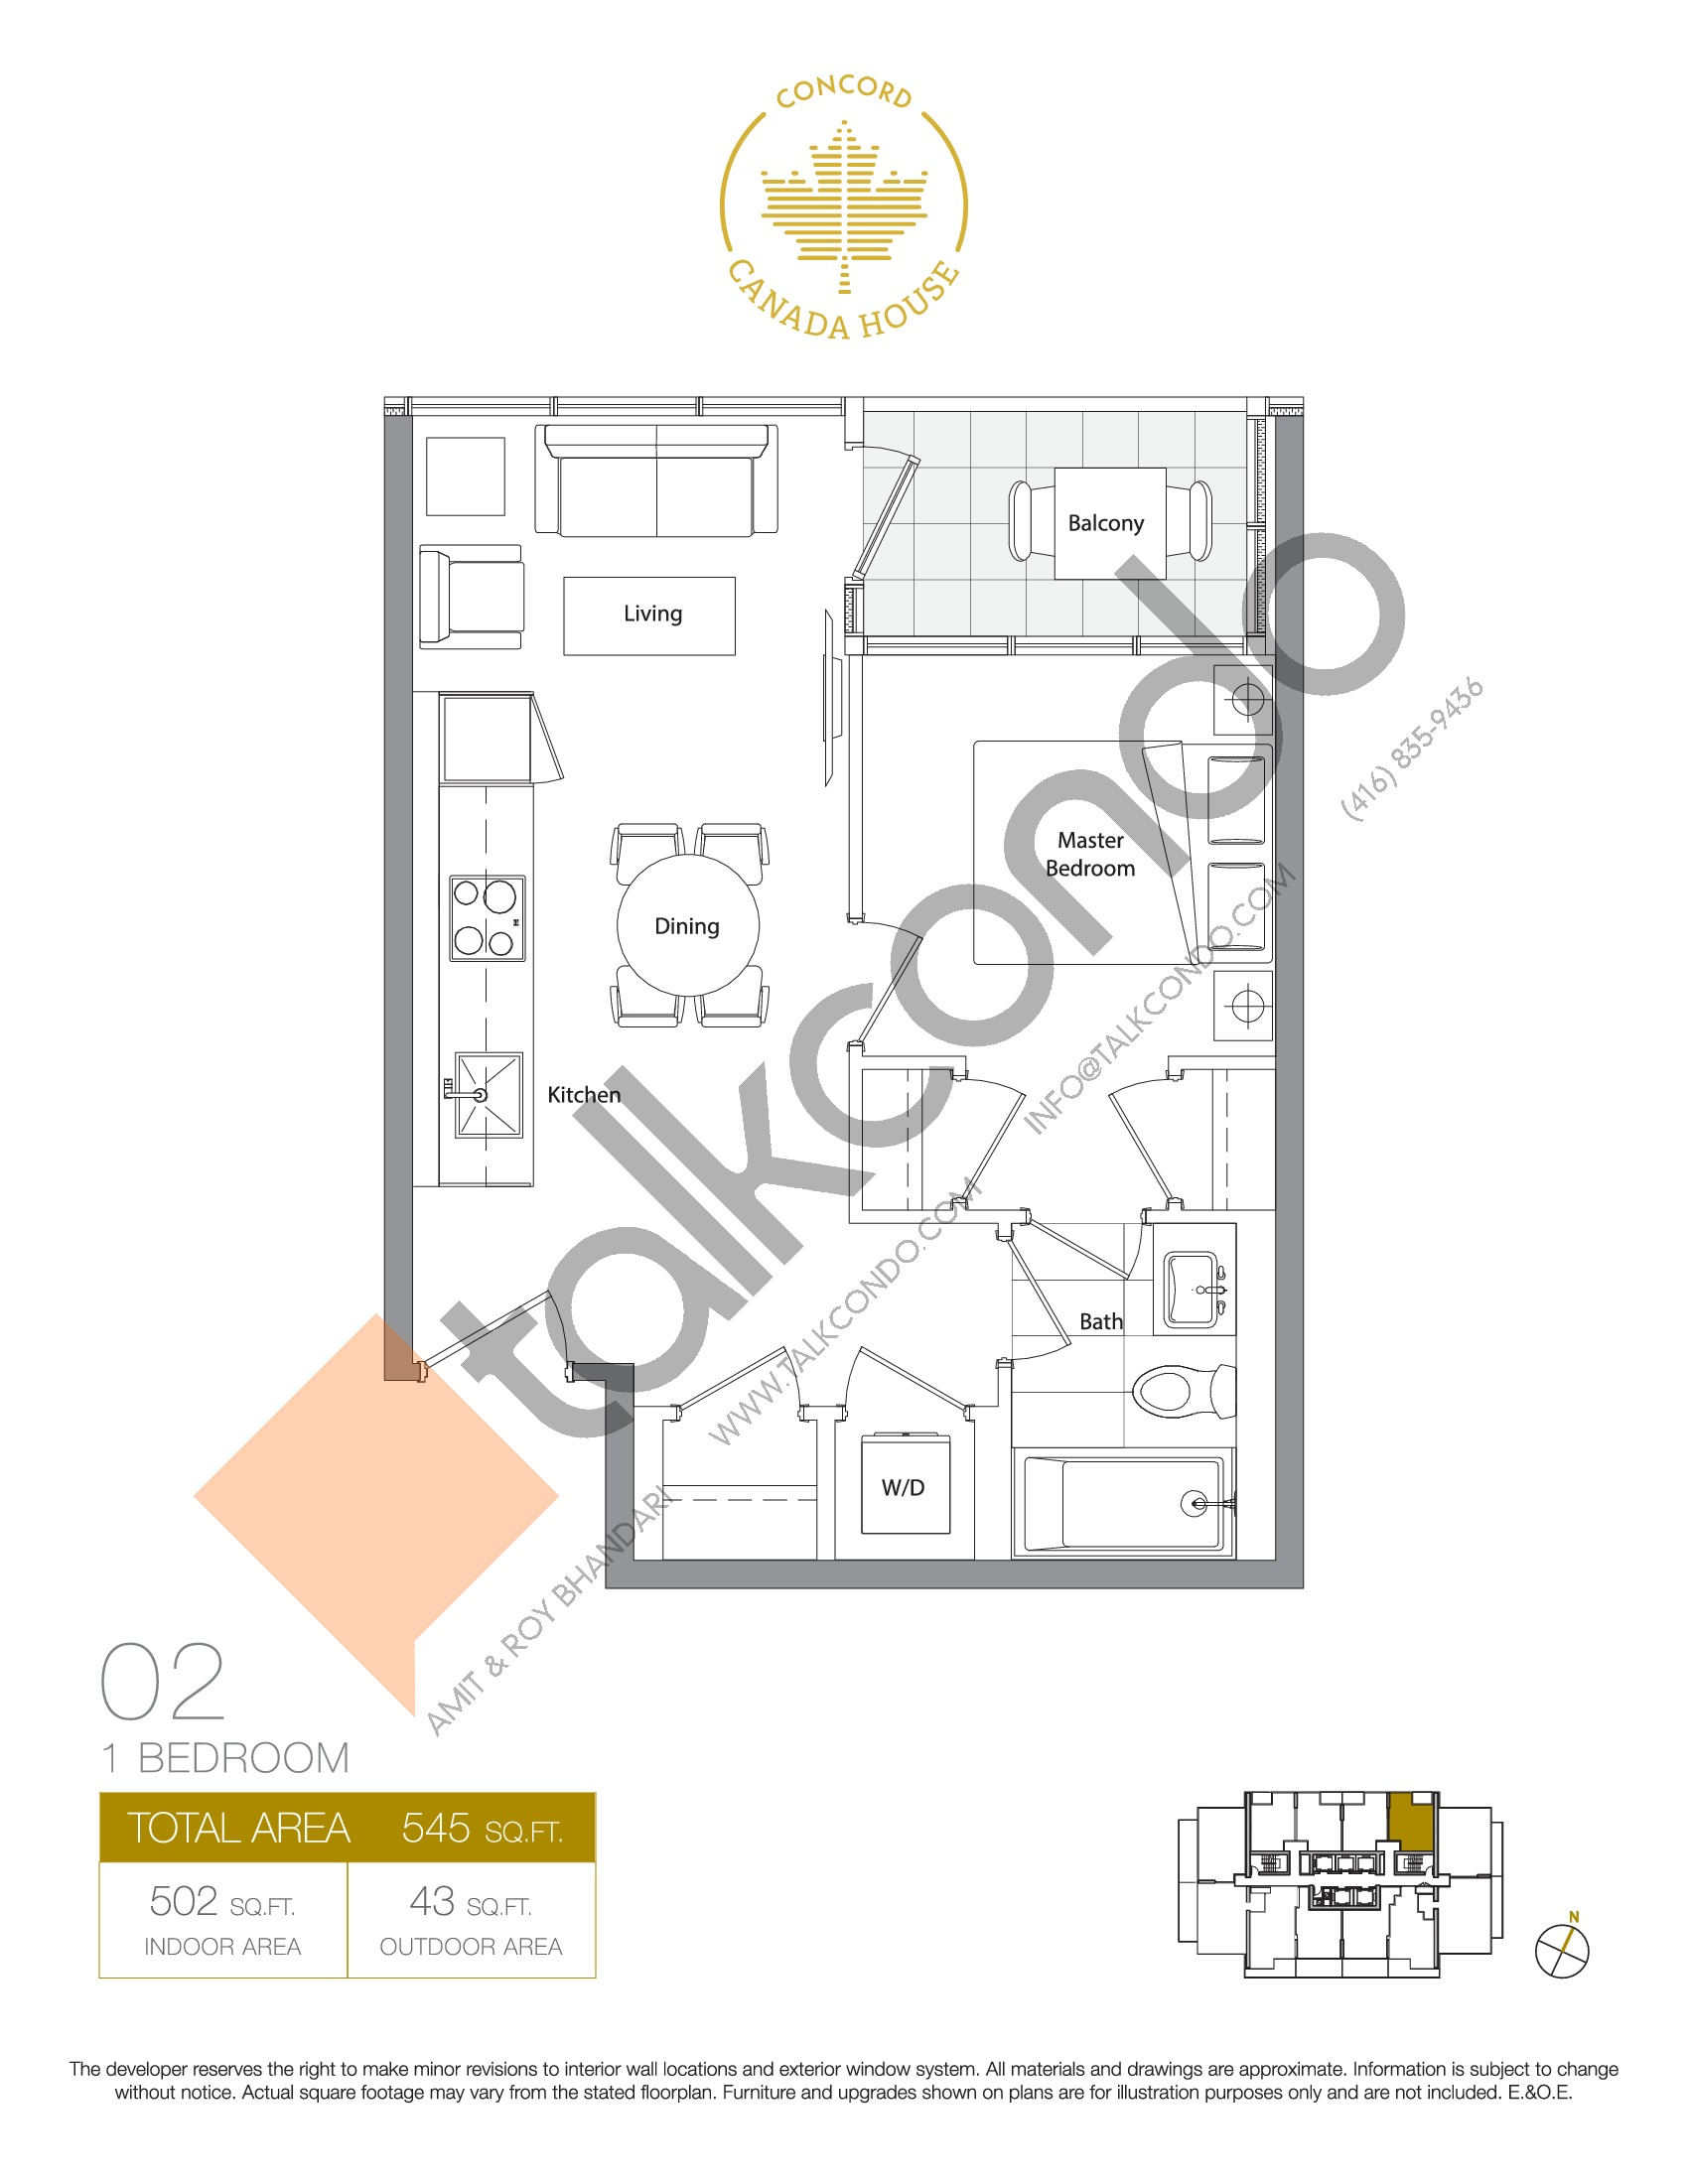 02 - East Tower Floor Plan at Concord Canada House Condos - 502 sq.ft